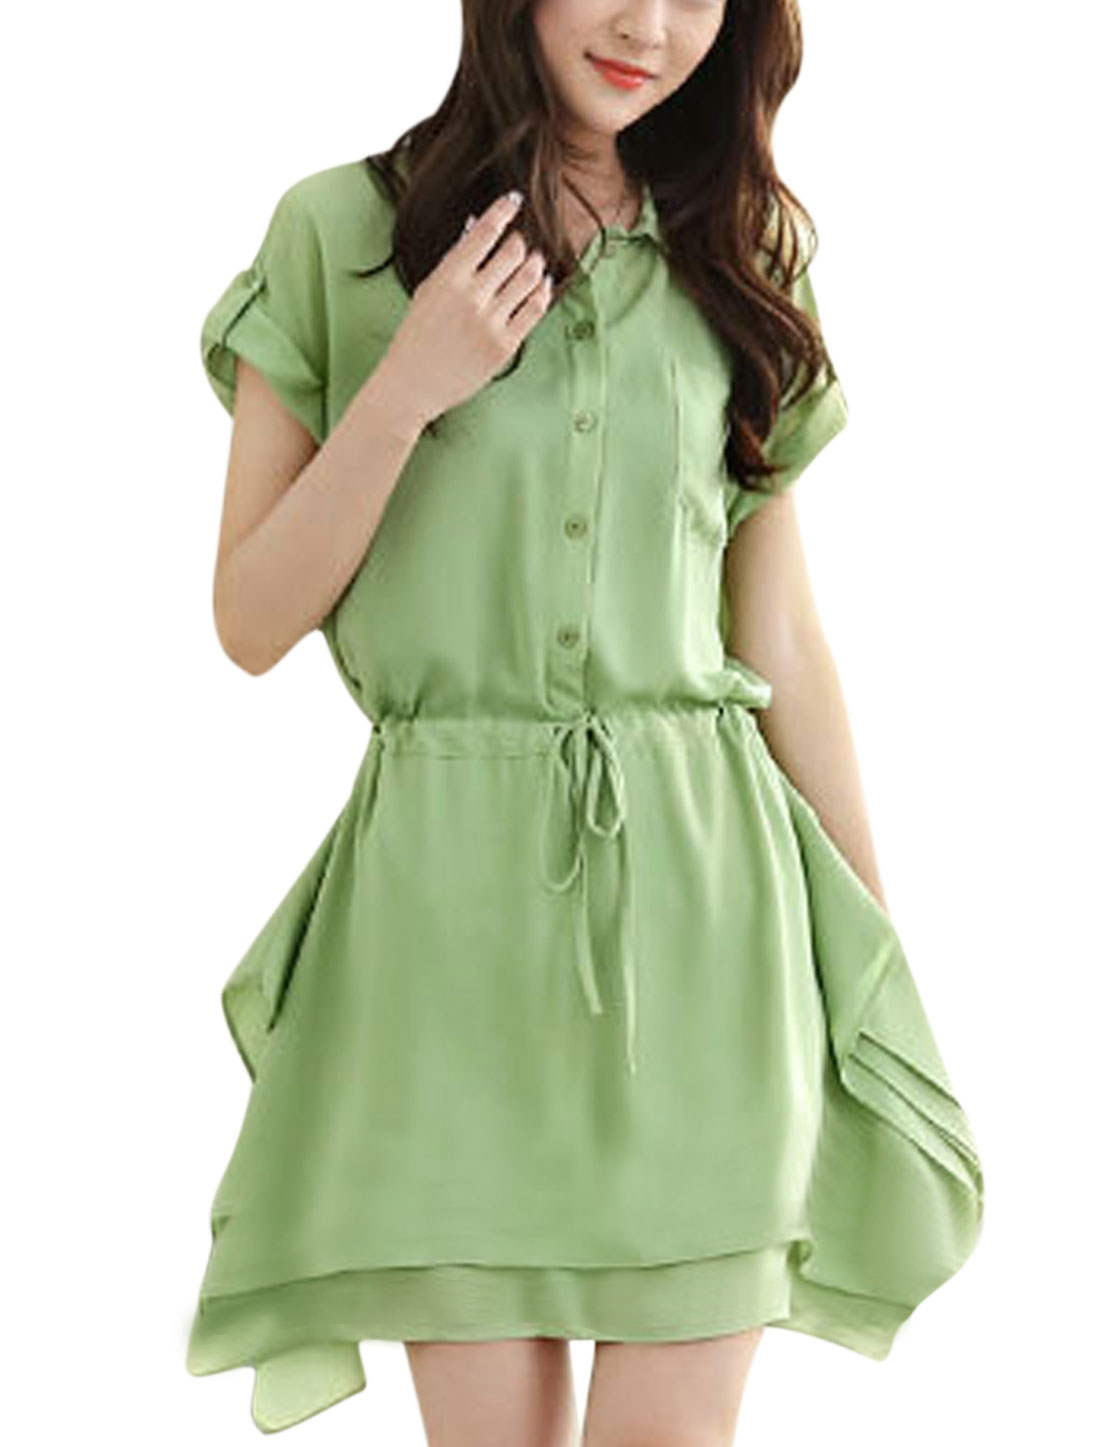 Lady 1/2 Placket Drawstring Waist Tiered Irregular Hem Shirt Dress Light Green S